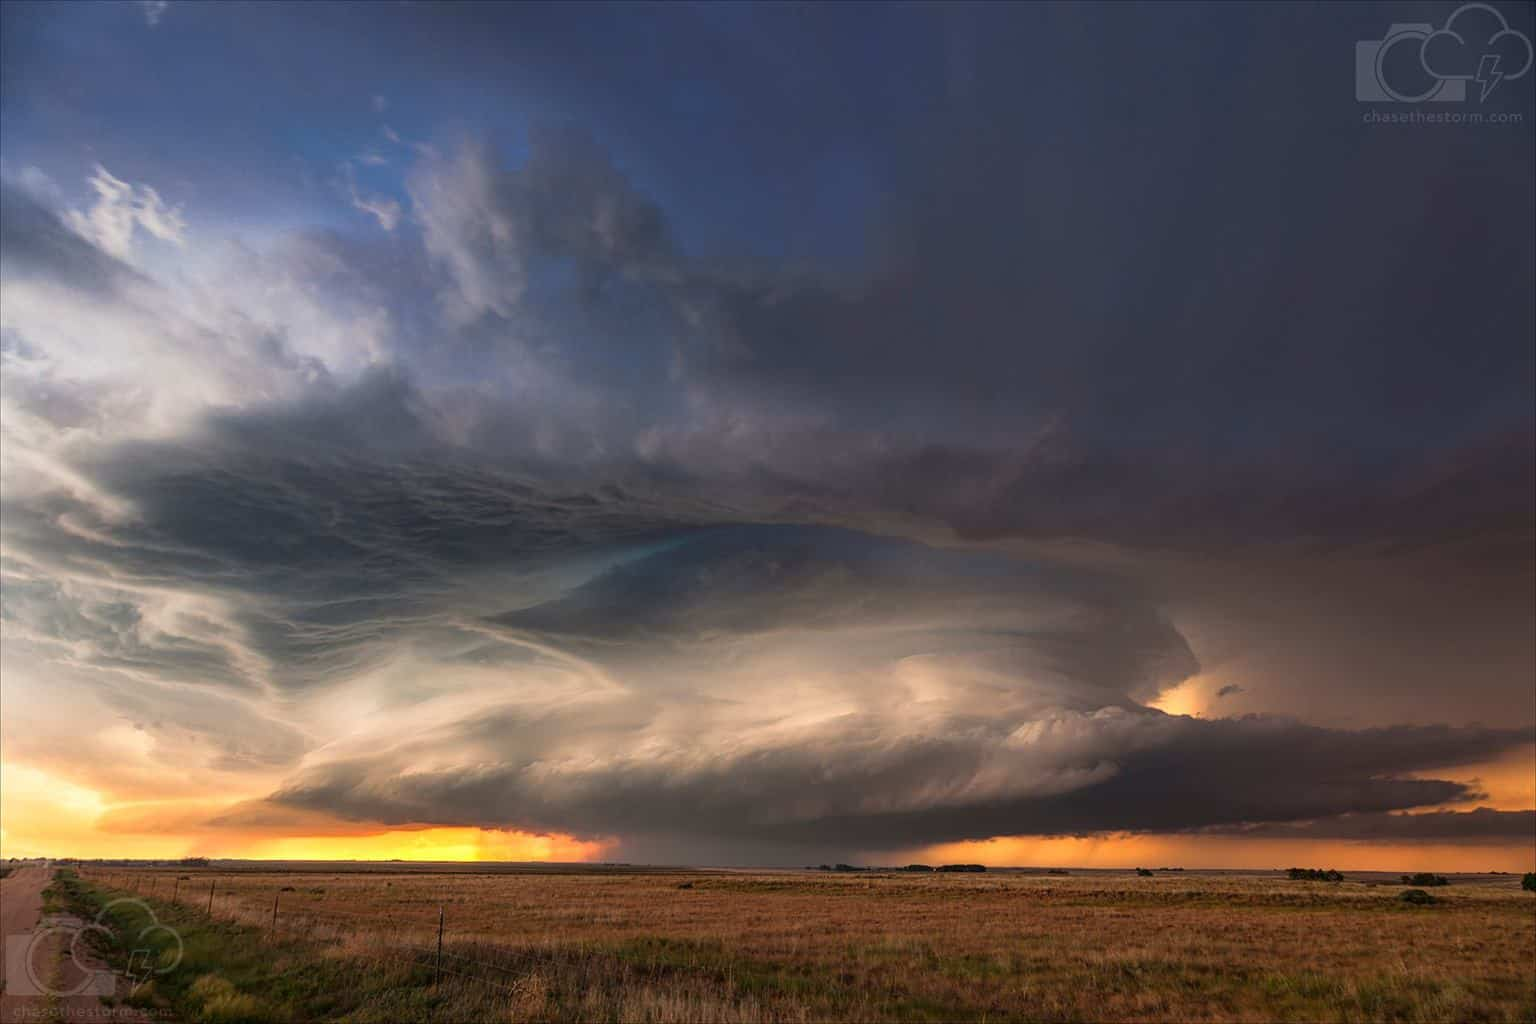 June 7th 2012, Colorado (sorry, memory is bad as to the location), a very long lived supercell & an amazing chase day. Gearing up for this season & whetting my appetite by going through photos from previous years.